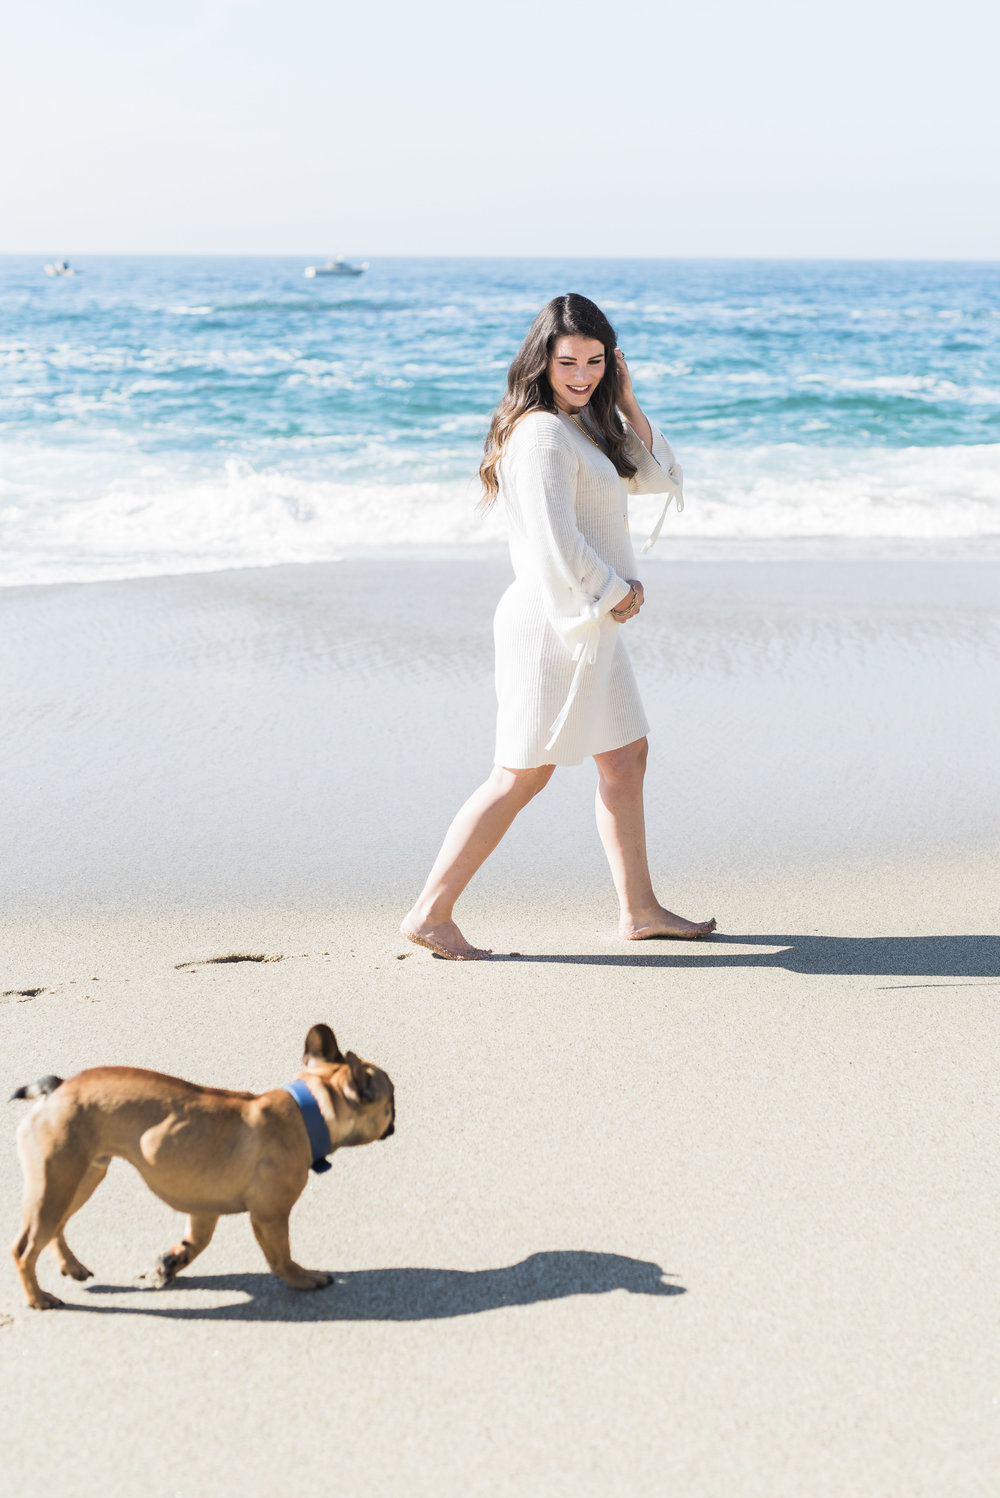 maternity photos on the beach_french bulldog_christmas photos neutral white outfits_01.jpg